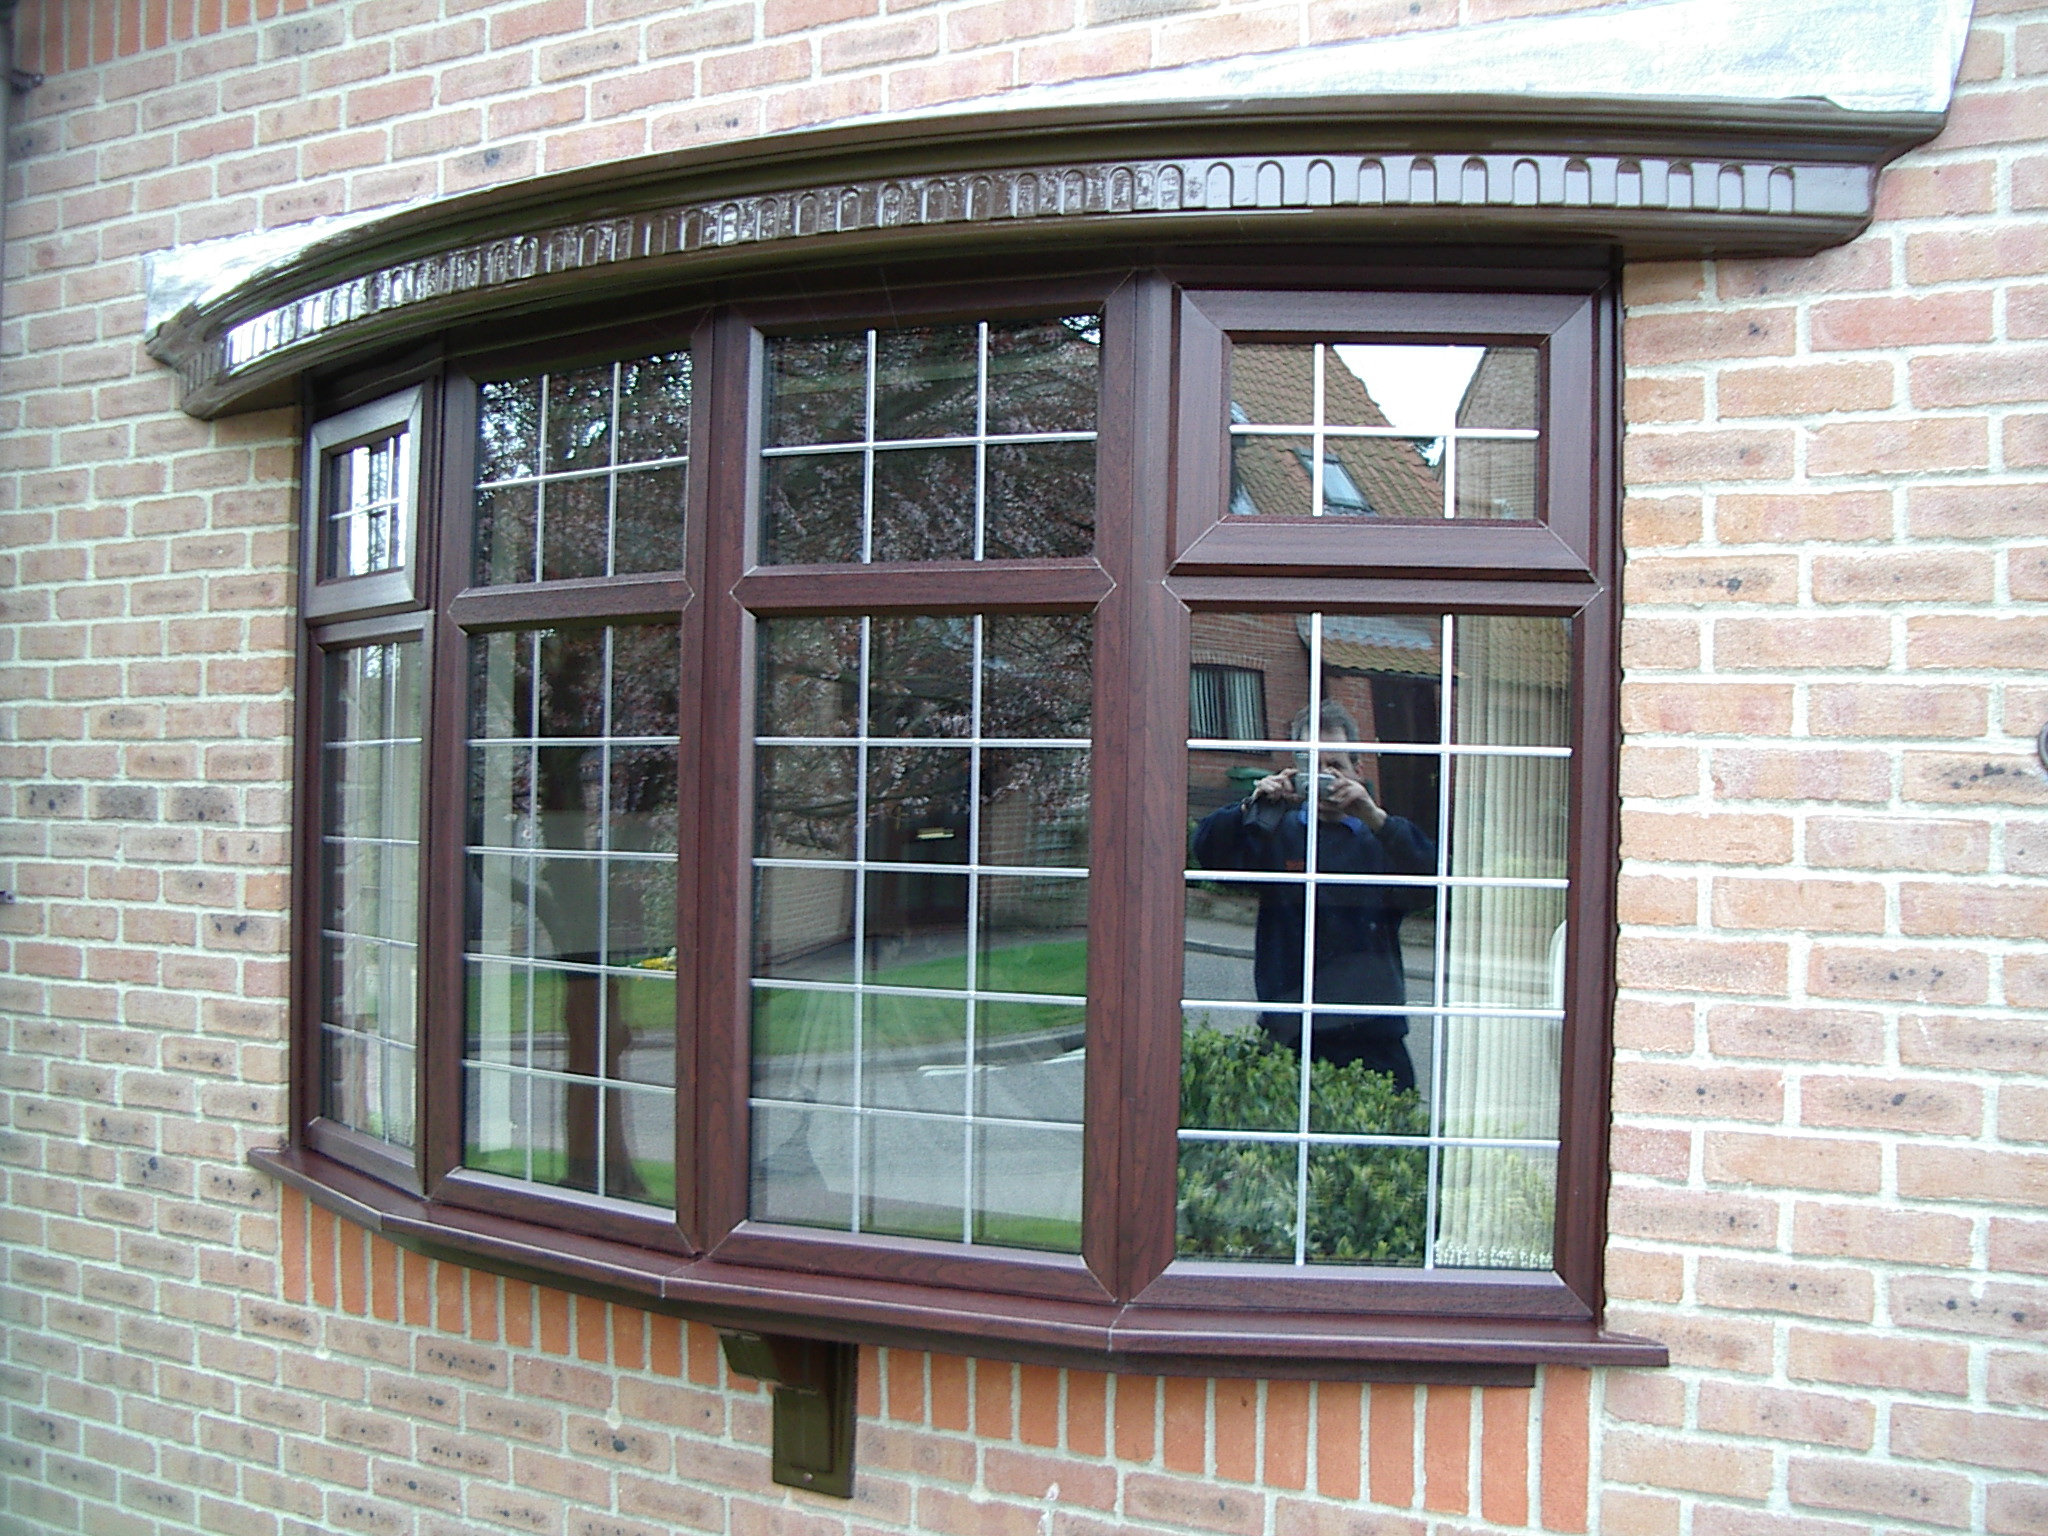 Window Design Home Window Designs Home Windows Design Window Magnificent Designs With Image Of